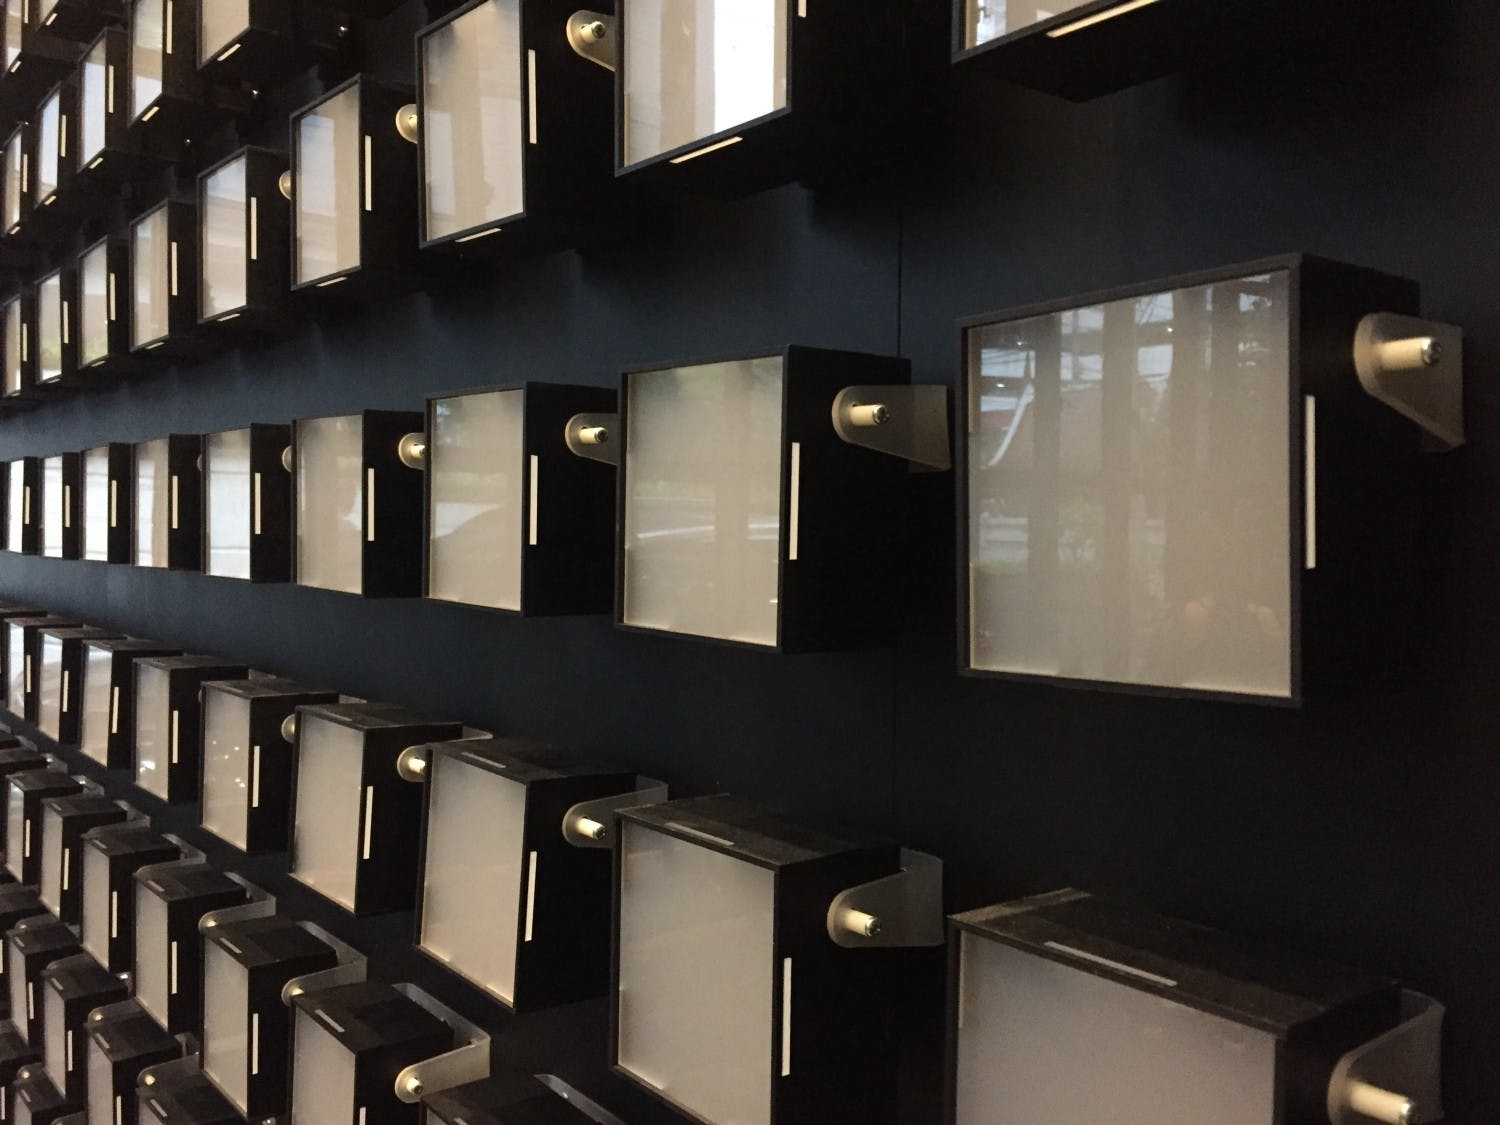 LED boxes in close detail